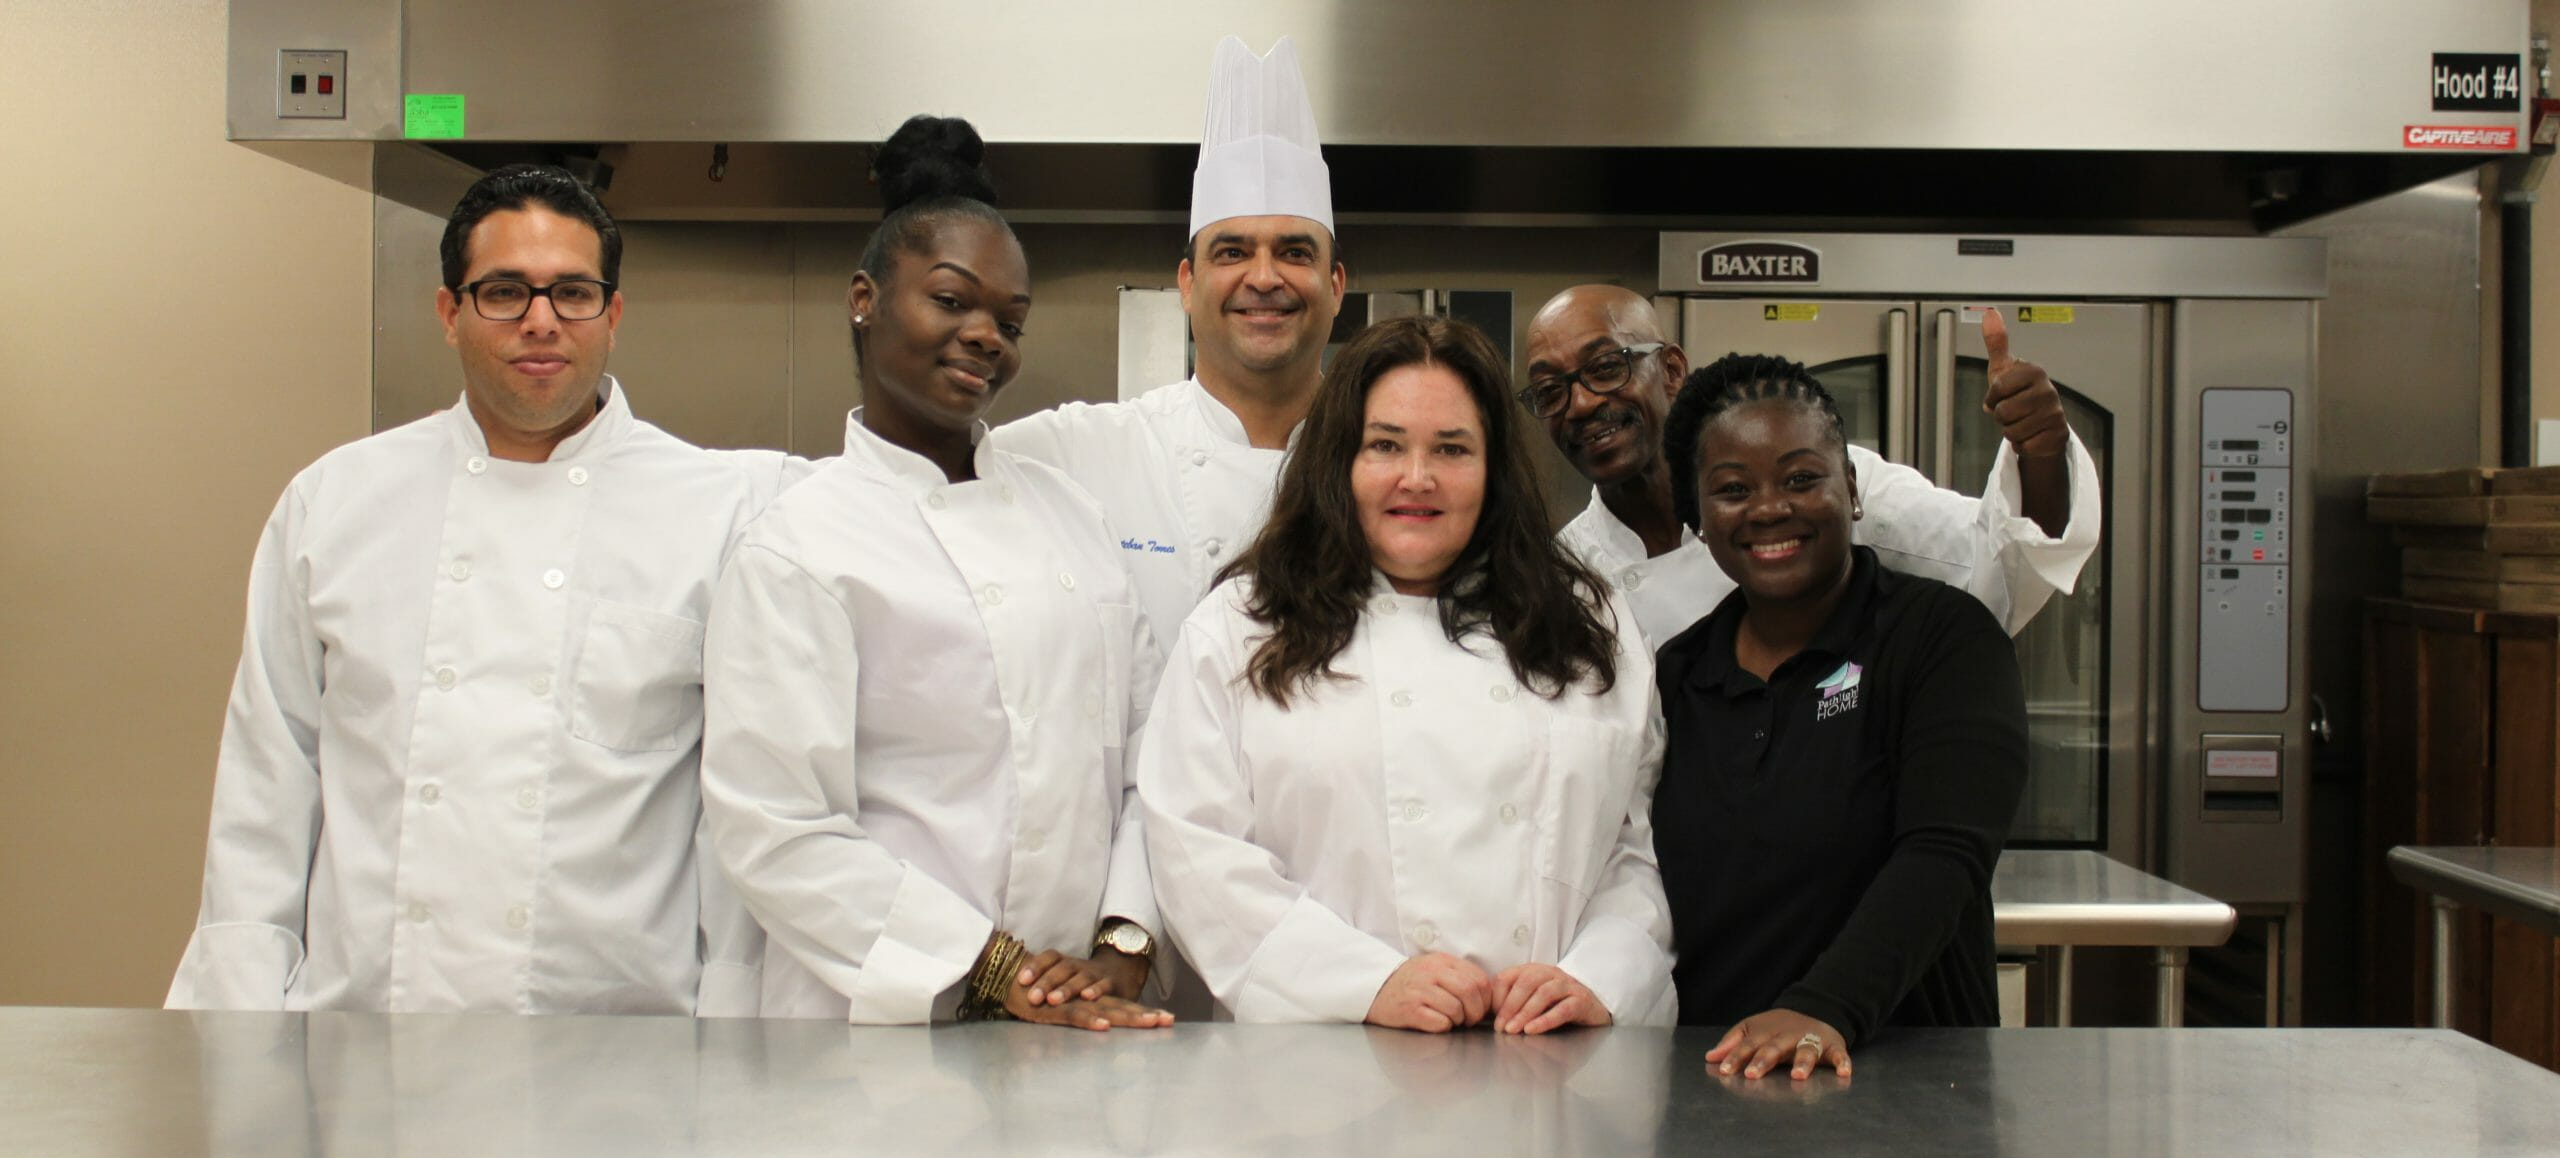 Graduates from the Pathlight Kitchen Culinary Program